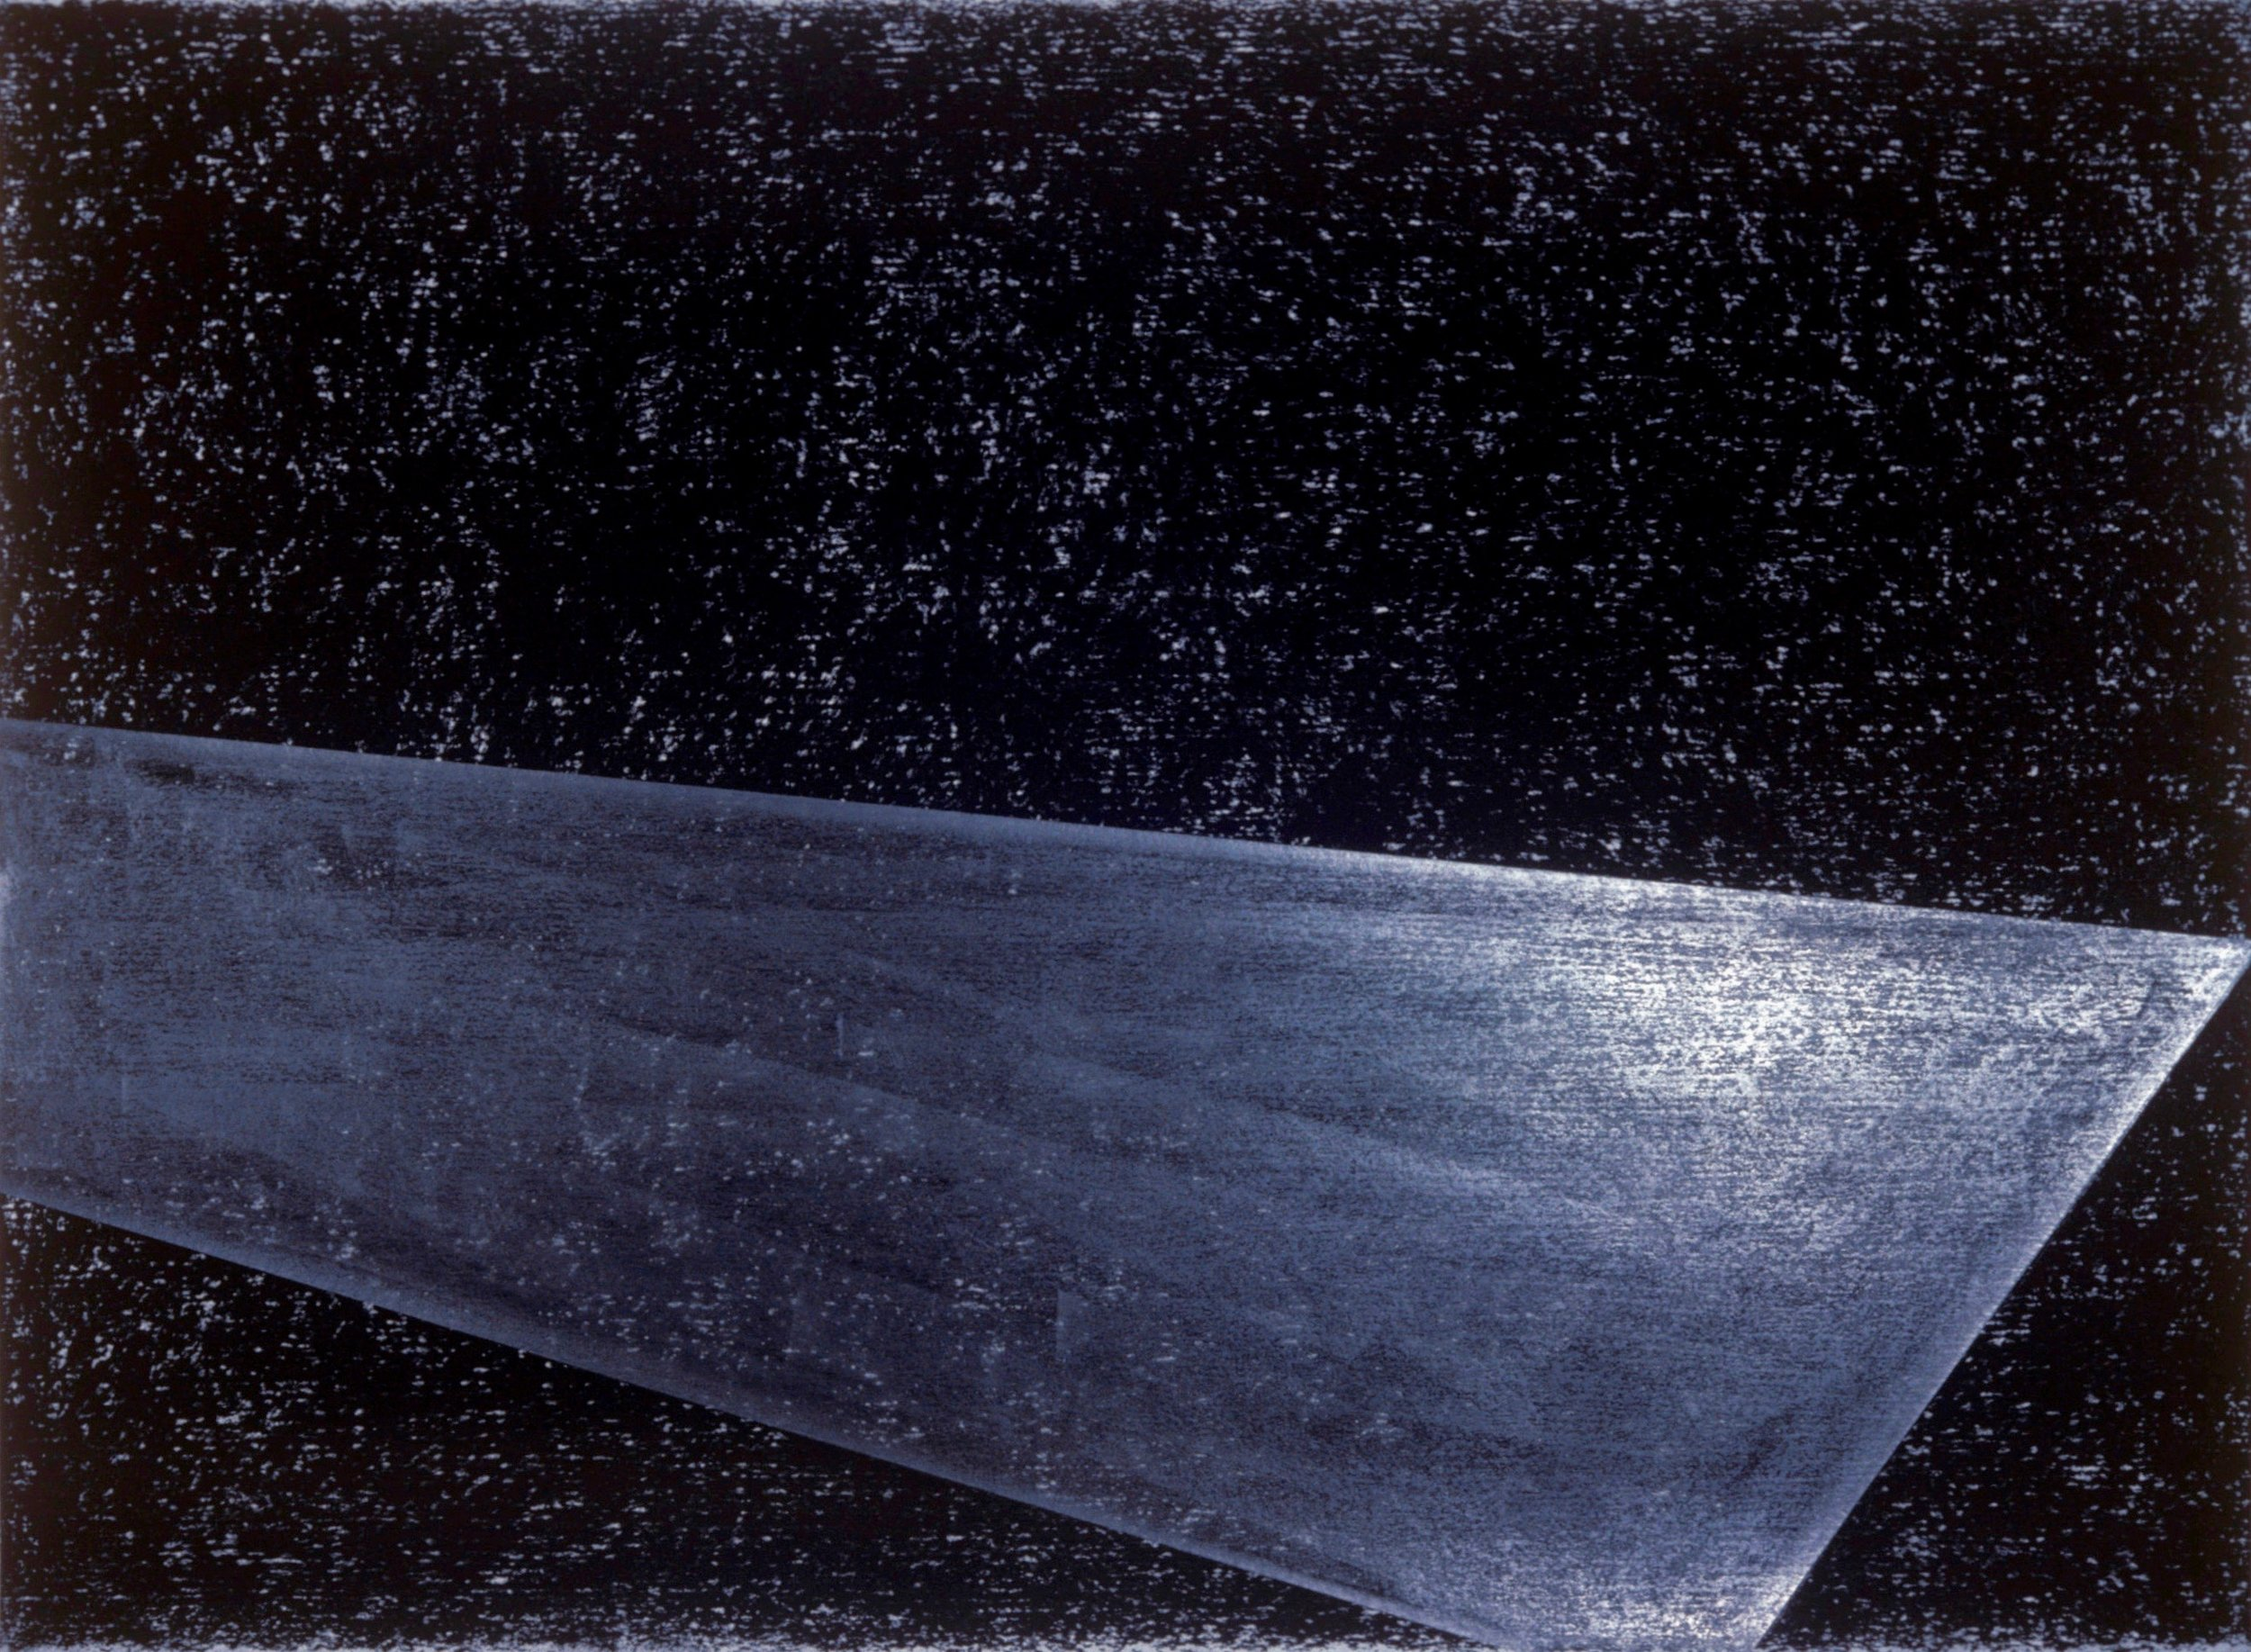 Untitled, 1984. Prism Series. Pastel and graphite on rag paper. 22 x 30""